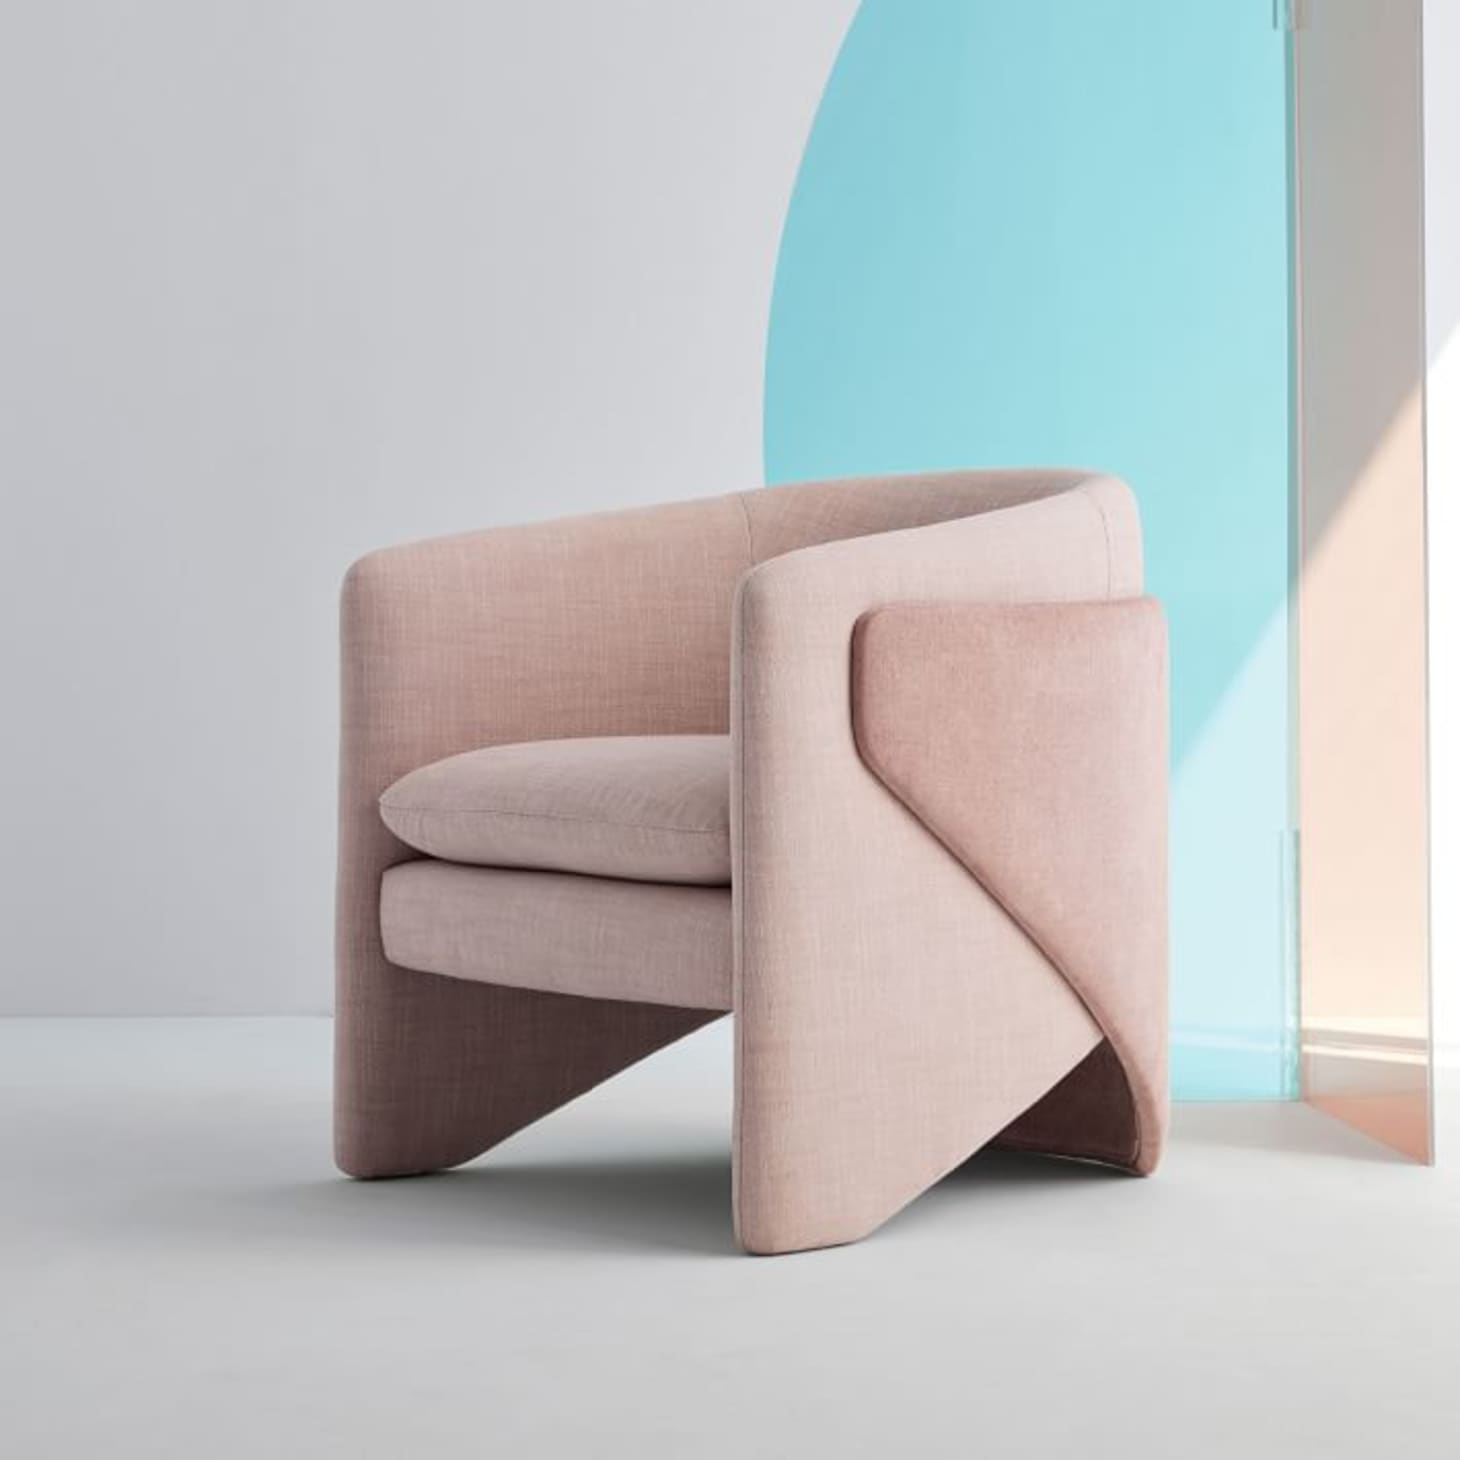 Groovy West Elm Spring 2018 Home Decor Trends Apartment Therapy Alphanode Cool Chair Designs And Ideas Alphanodeonline